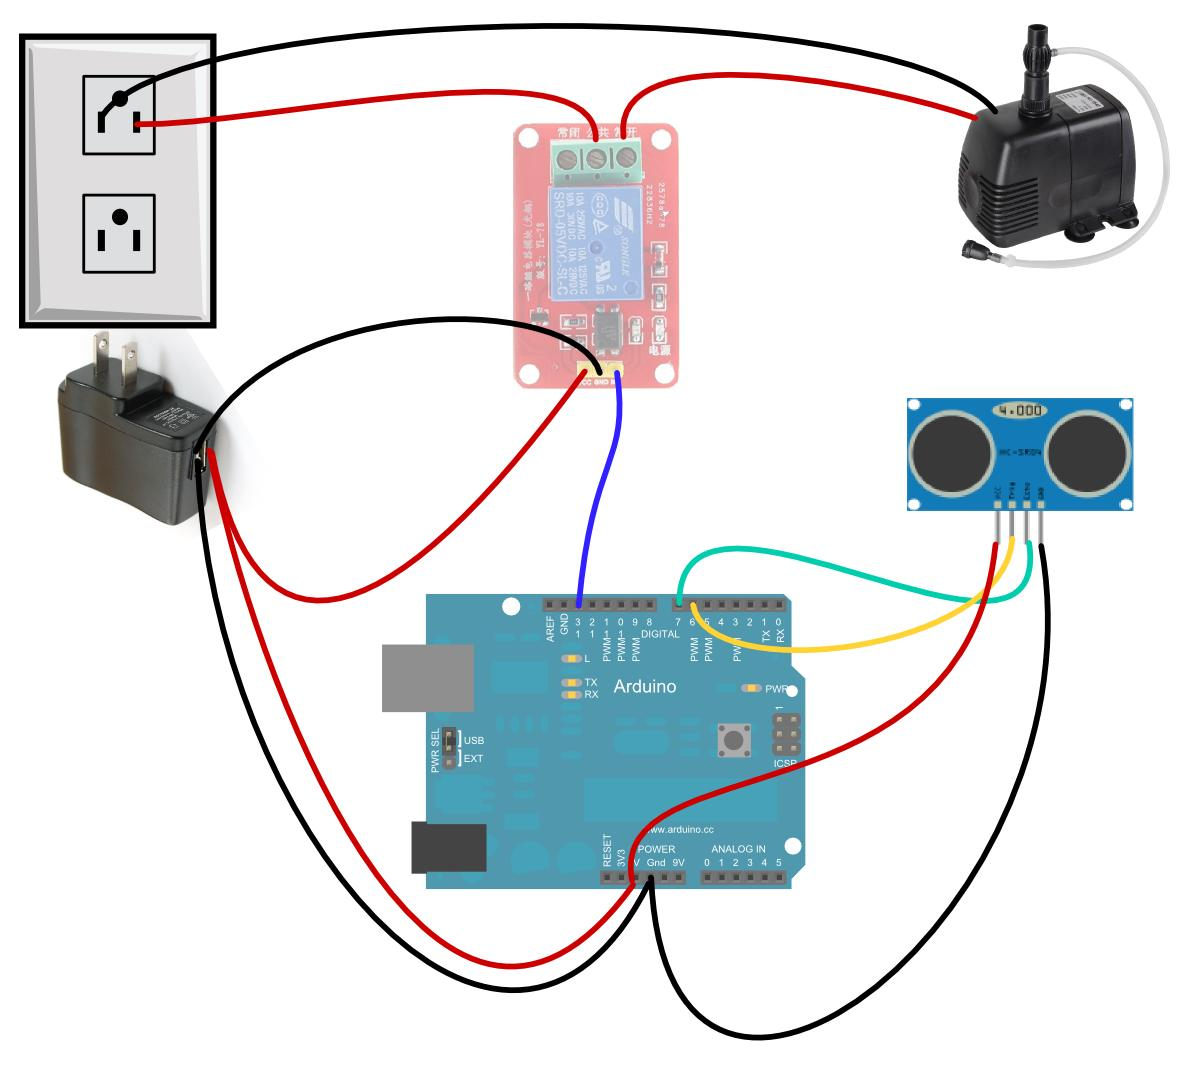 hight resolution of the relay shall support the voltage at your home and shall also support the current requested by the pump which is usually low